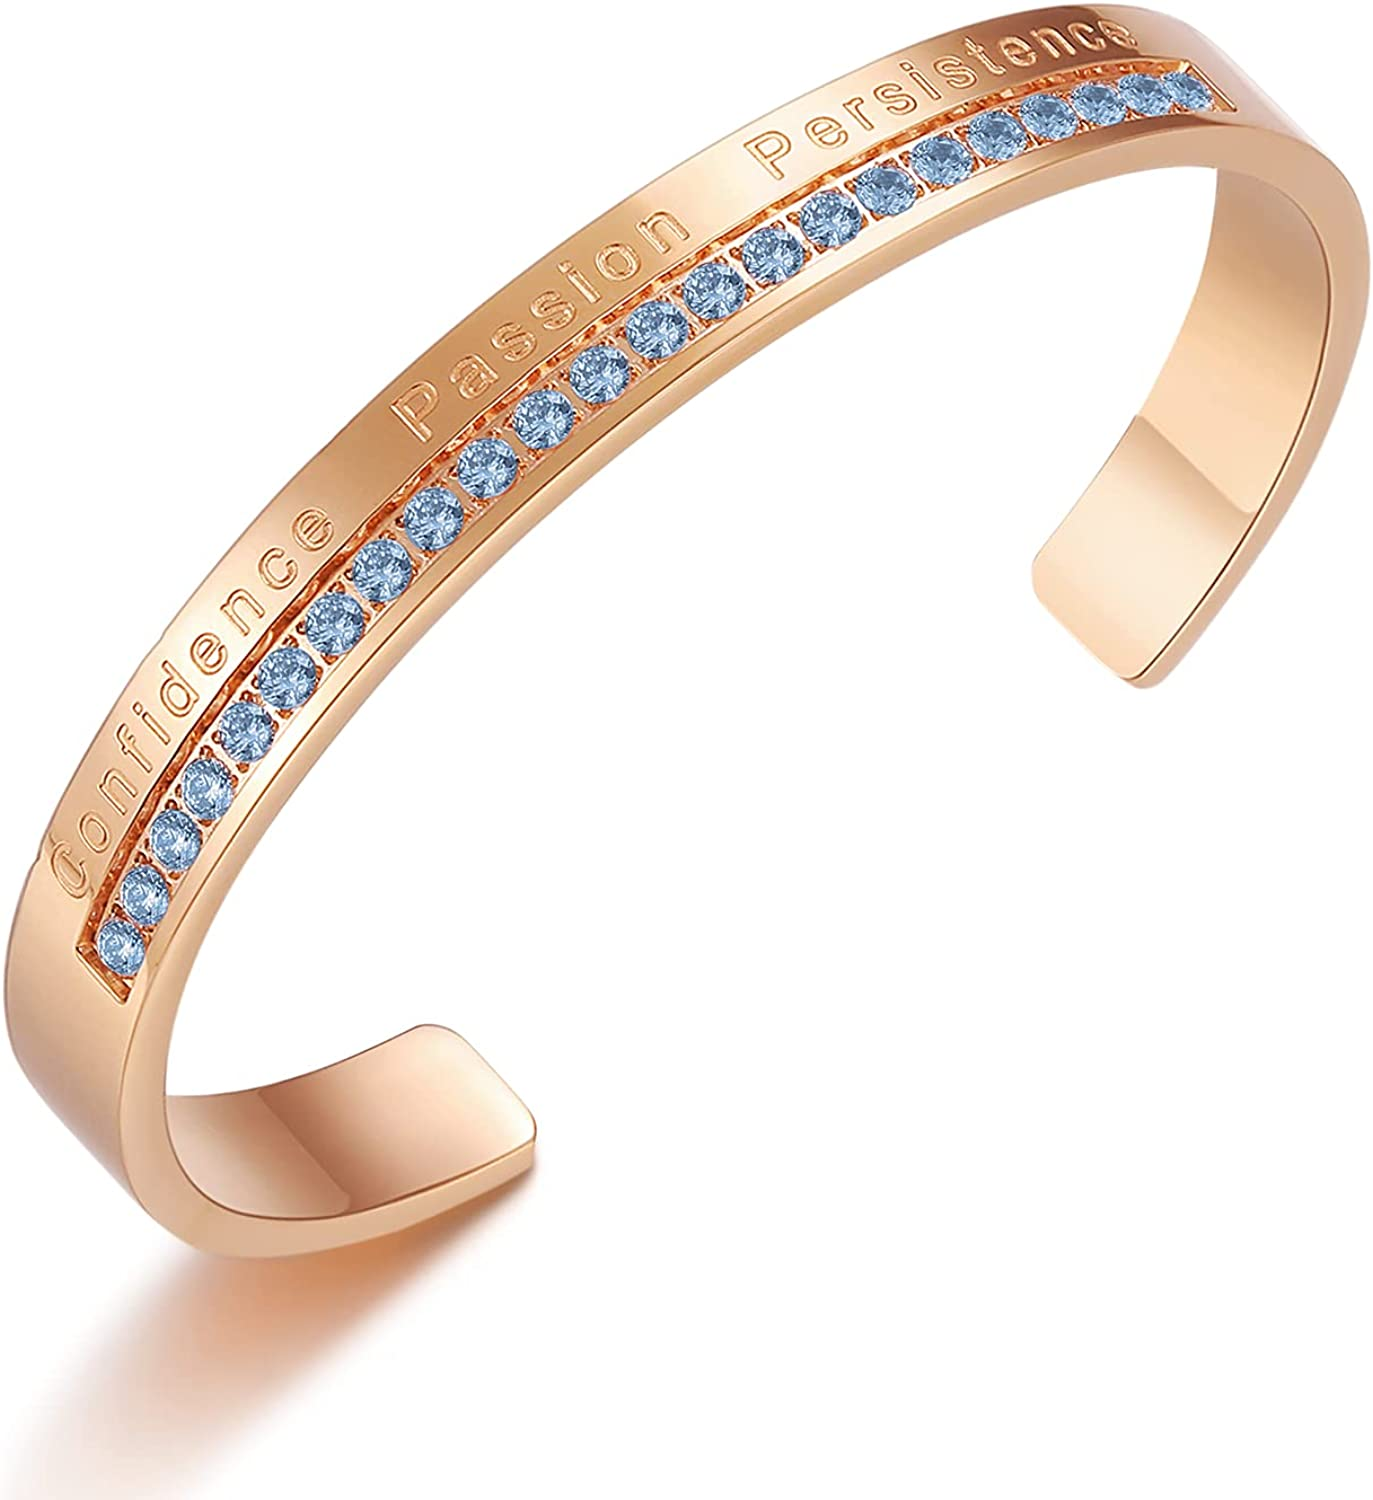 Inspirational Jewelry Free shipping Gifts for Women Cuff Bangle Popularity Mom Bracelets